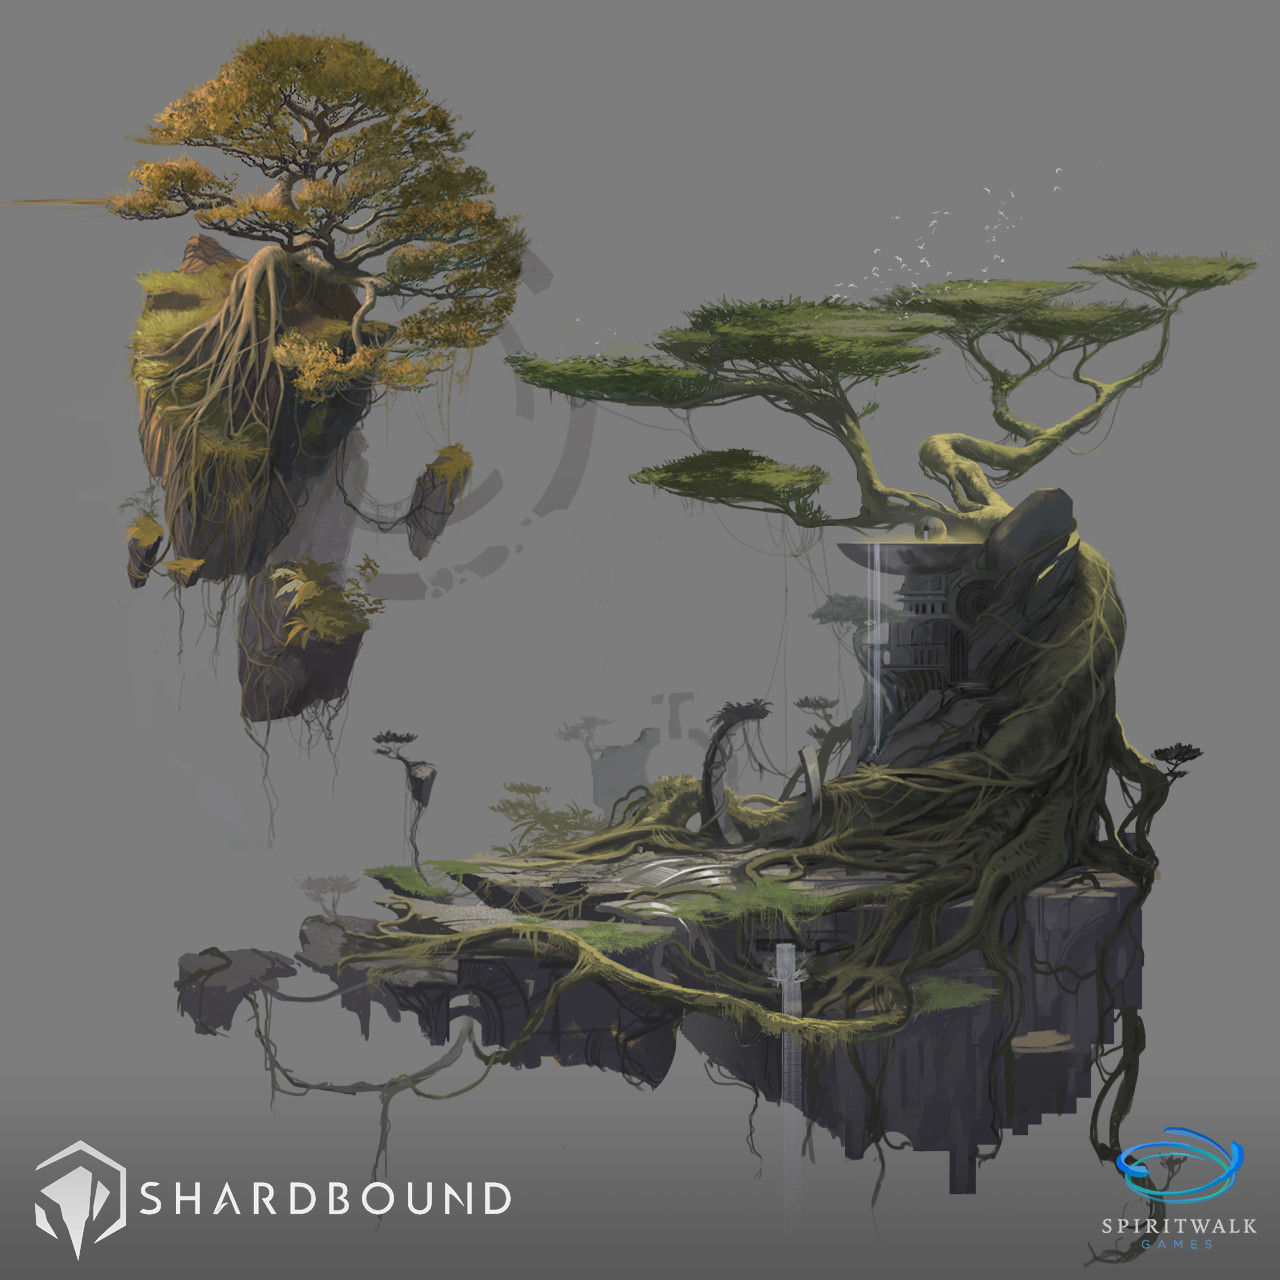 Trees Vis Dev - Shardbound